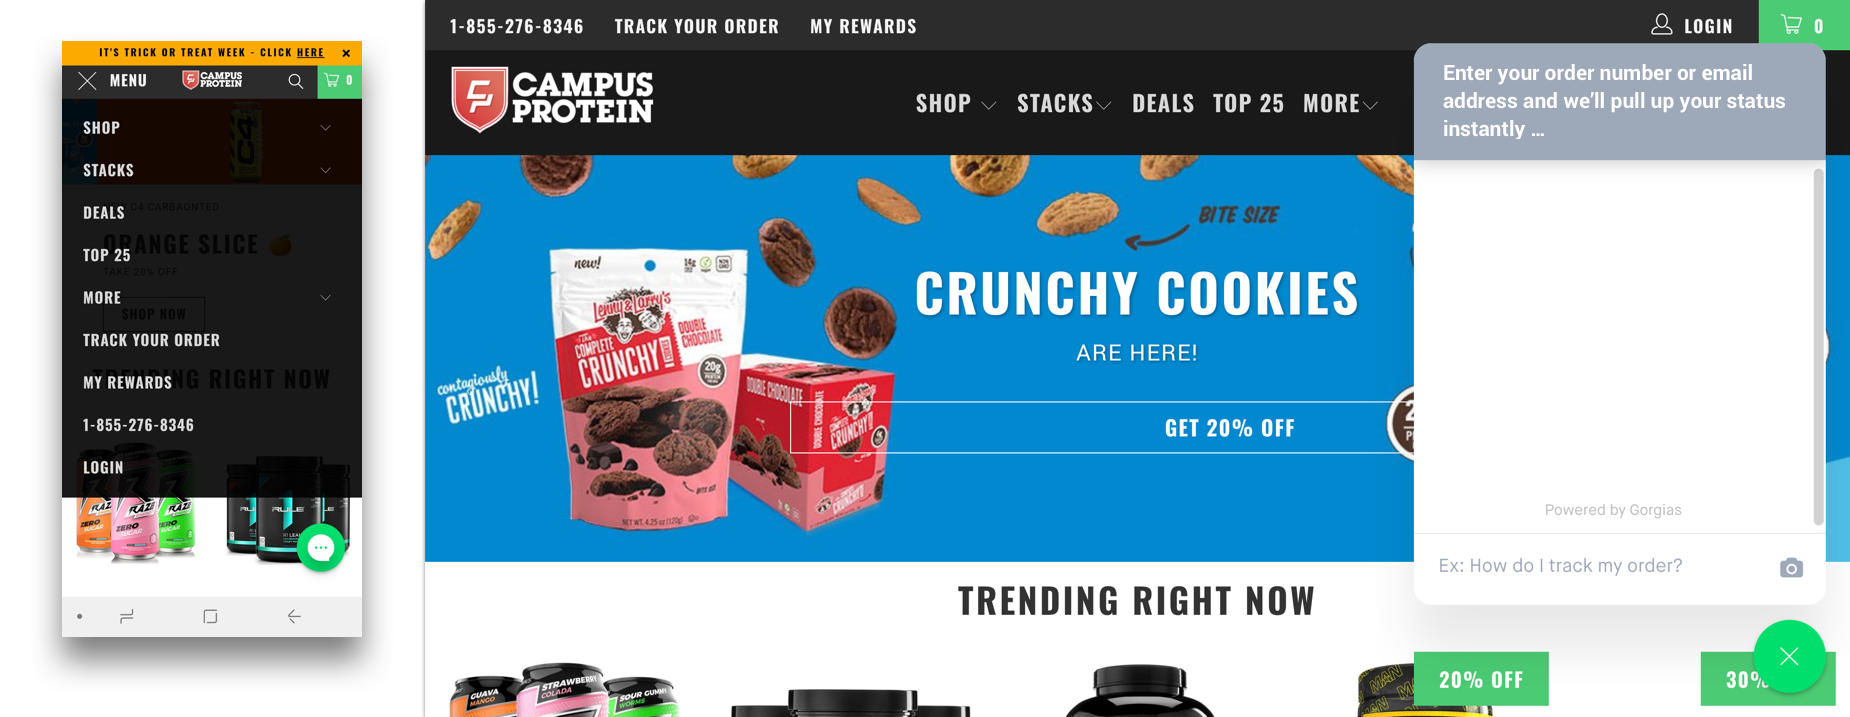 Holiday communication channels for ecommerce customer service from Campus Protein